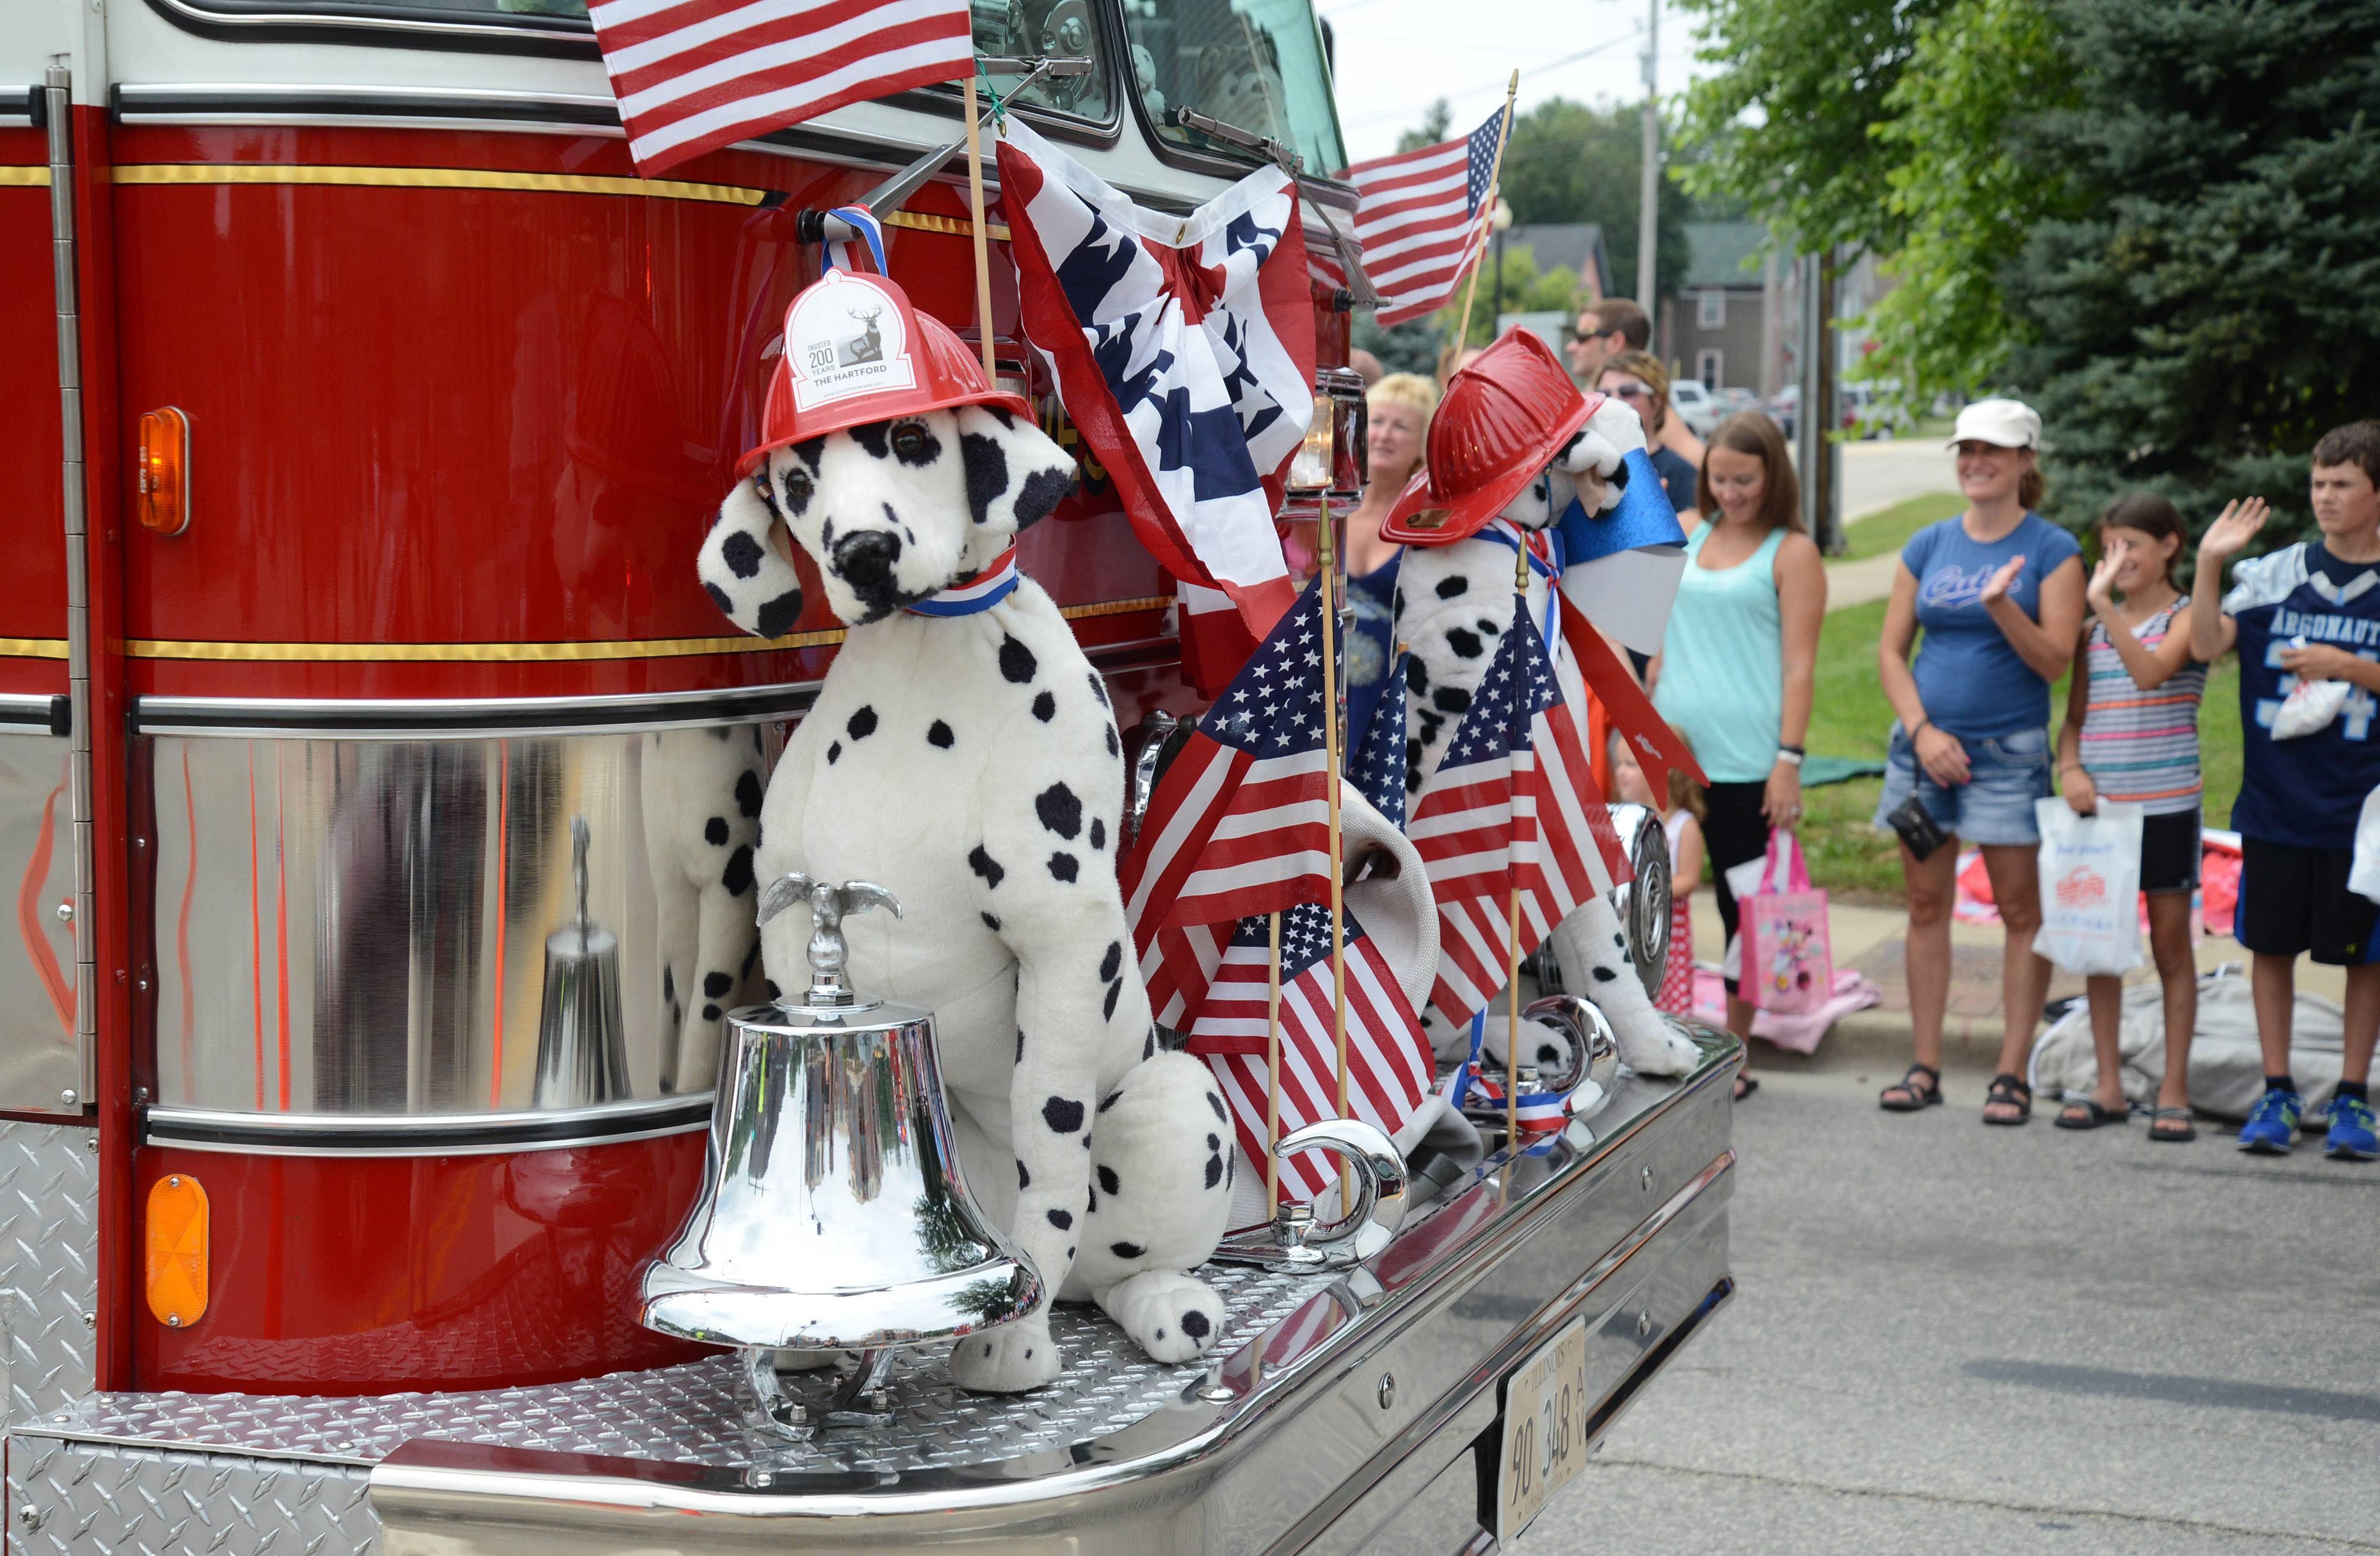 Several emergency vehicles joined in on the Founders' Days parade in Algonquin on Saturday.